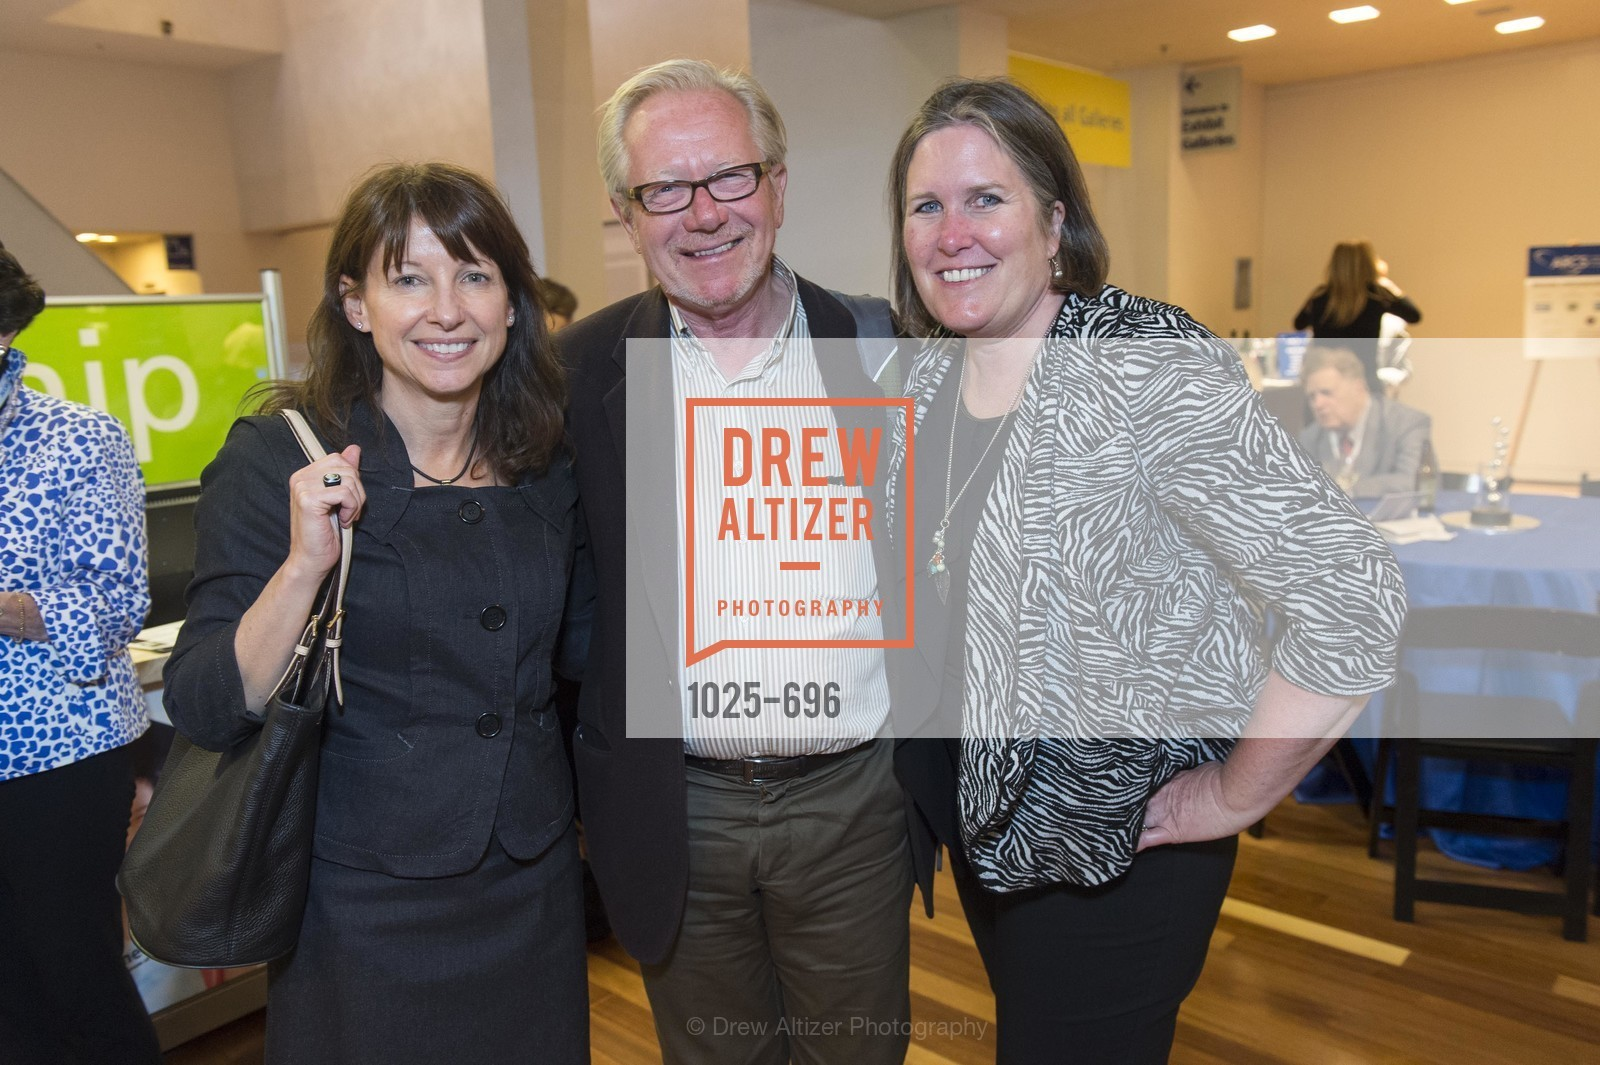 Janet Berry, Tom Kehler, Babs Sandeen, ARCS FOUNDATION Scholar Symposium, US, May 5th, 2015,Drew Altizer, Drew Altizer Photography, full-service agency, private events, San Francisco photographer, photographer california